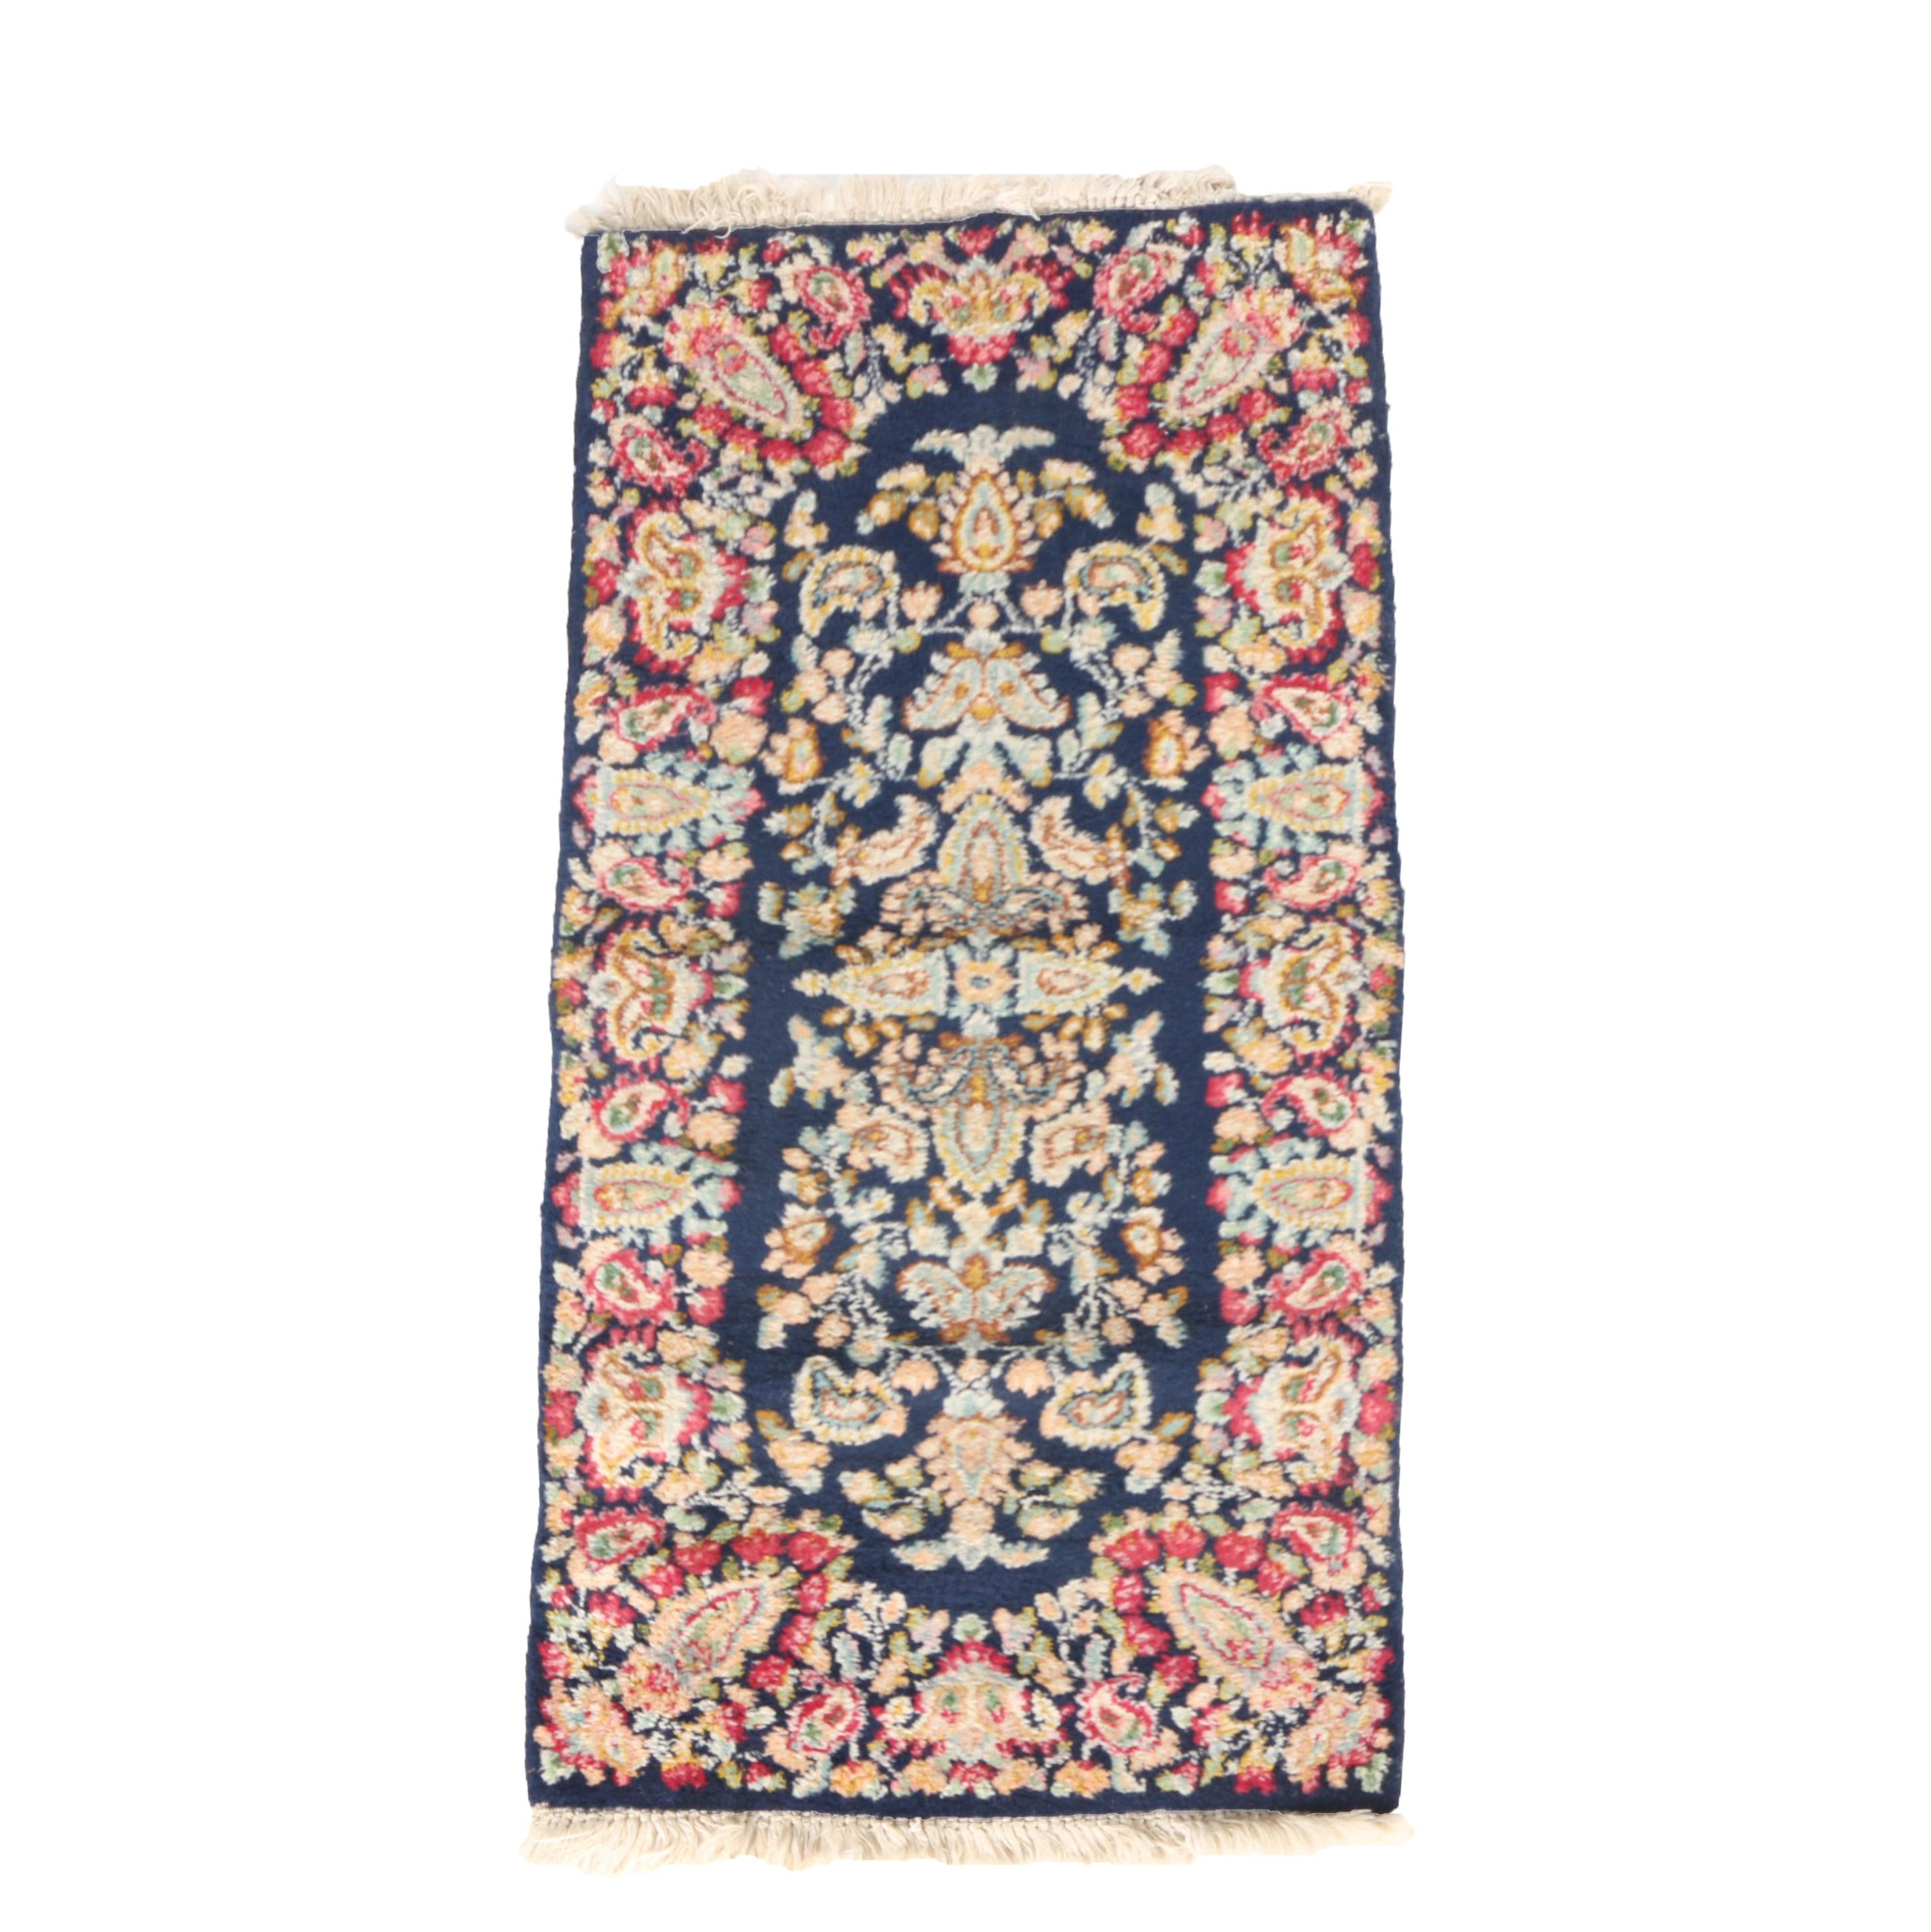 Hand-Knotted Indo-Persian Accent Rug